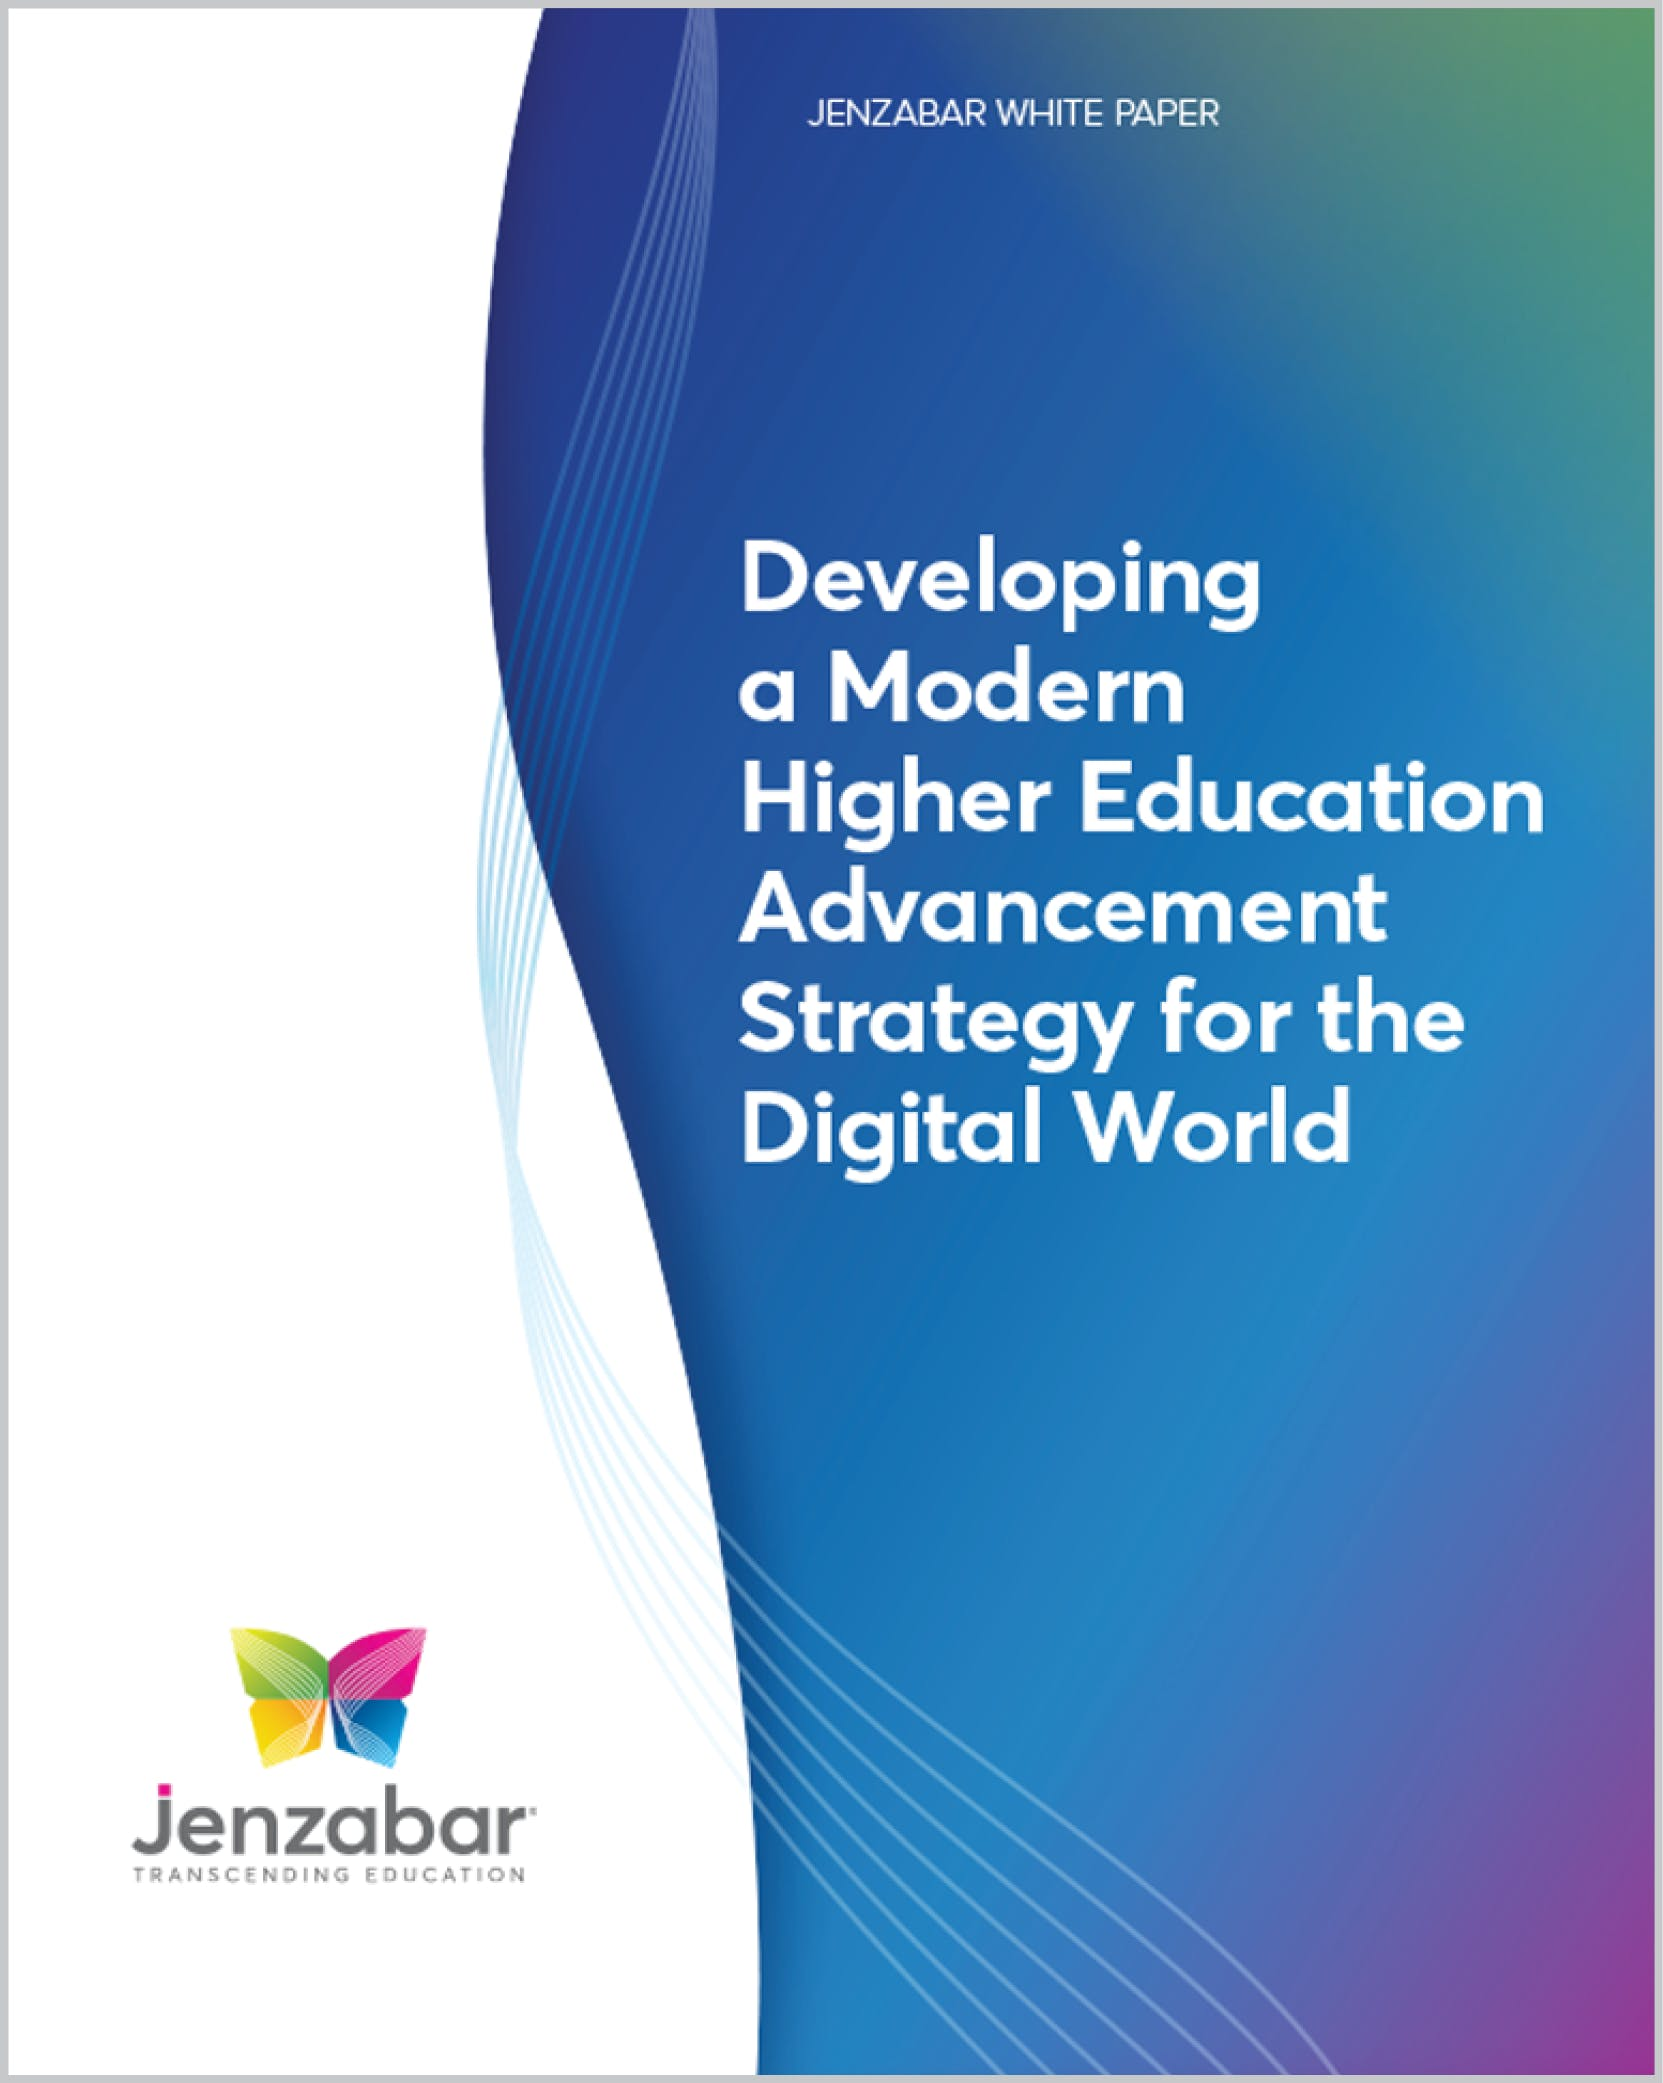 Developing a Modern Advancement Strategy for the Digital World